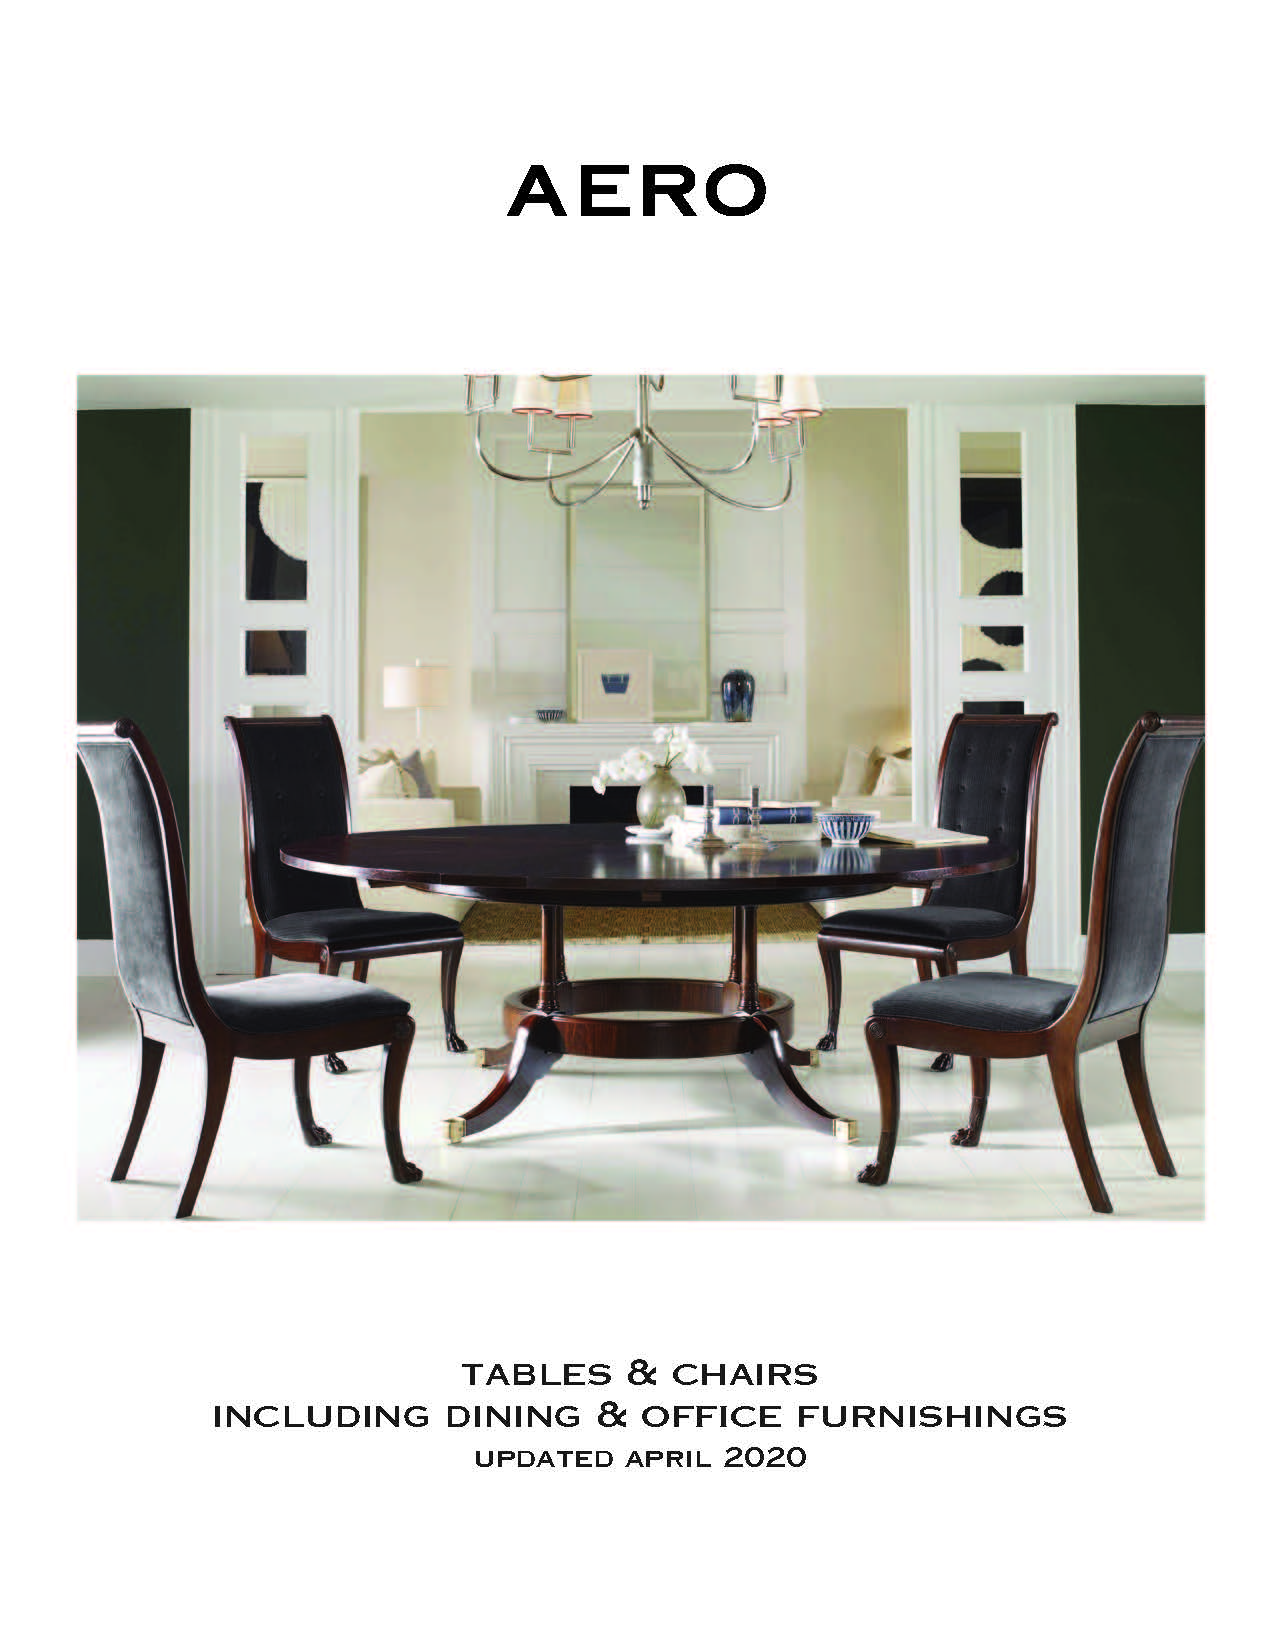 AERO Dining Office Furniture Cover